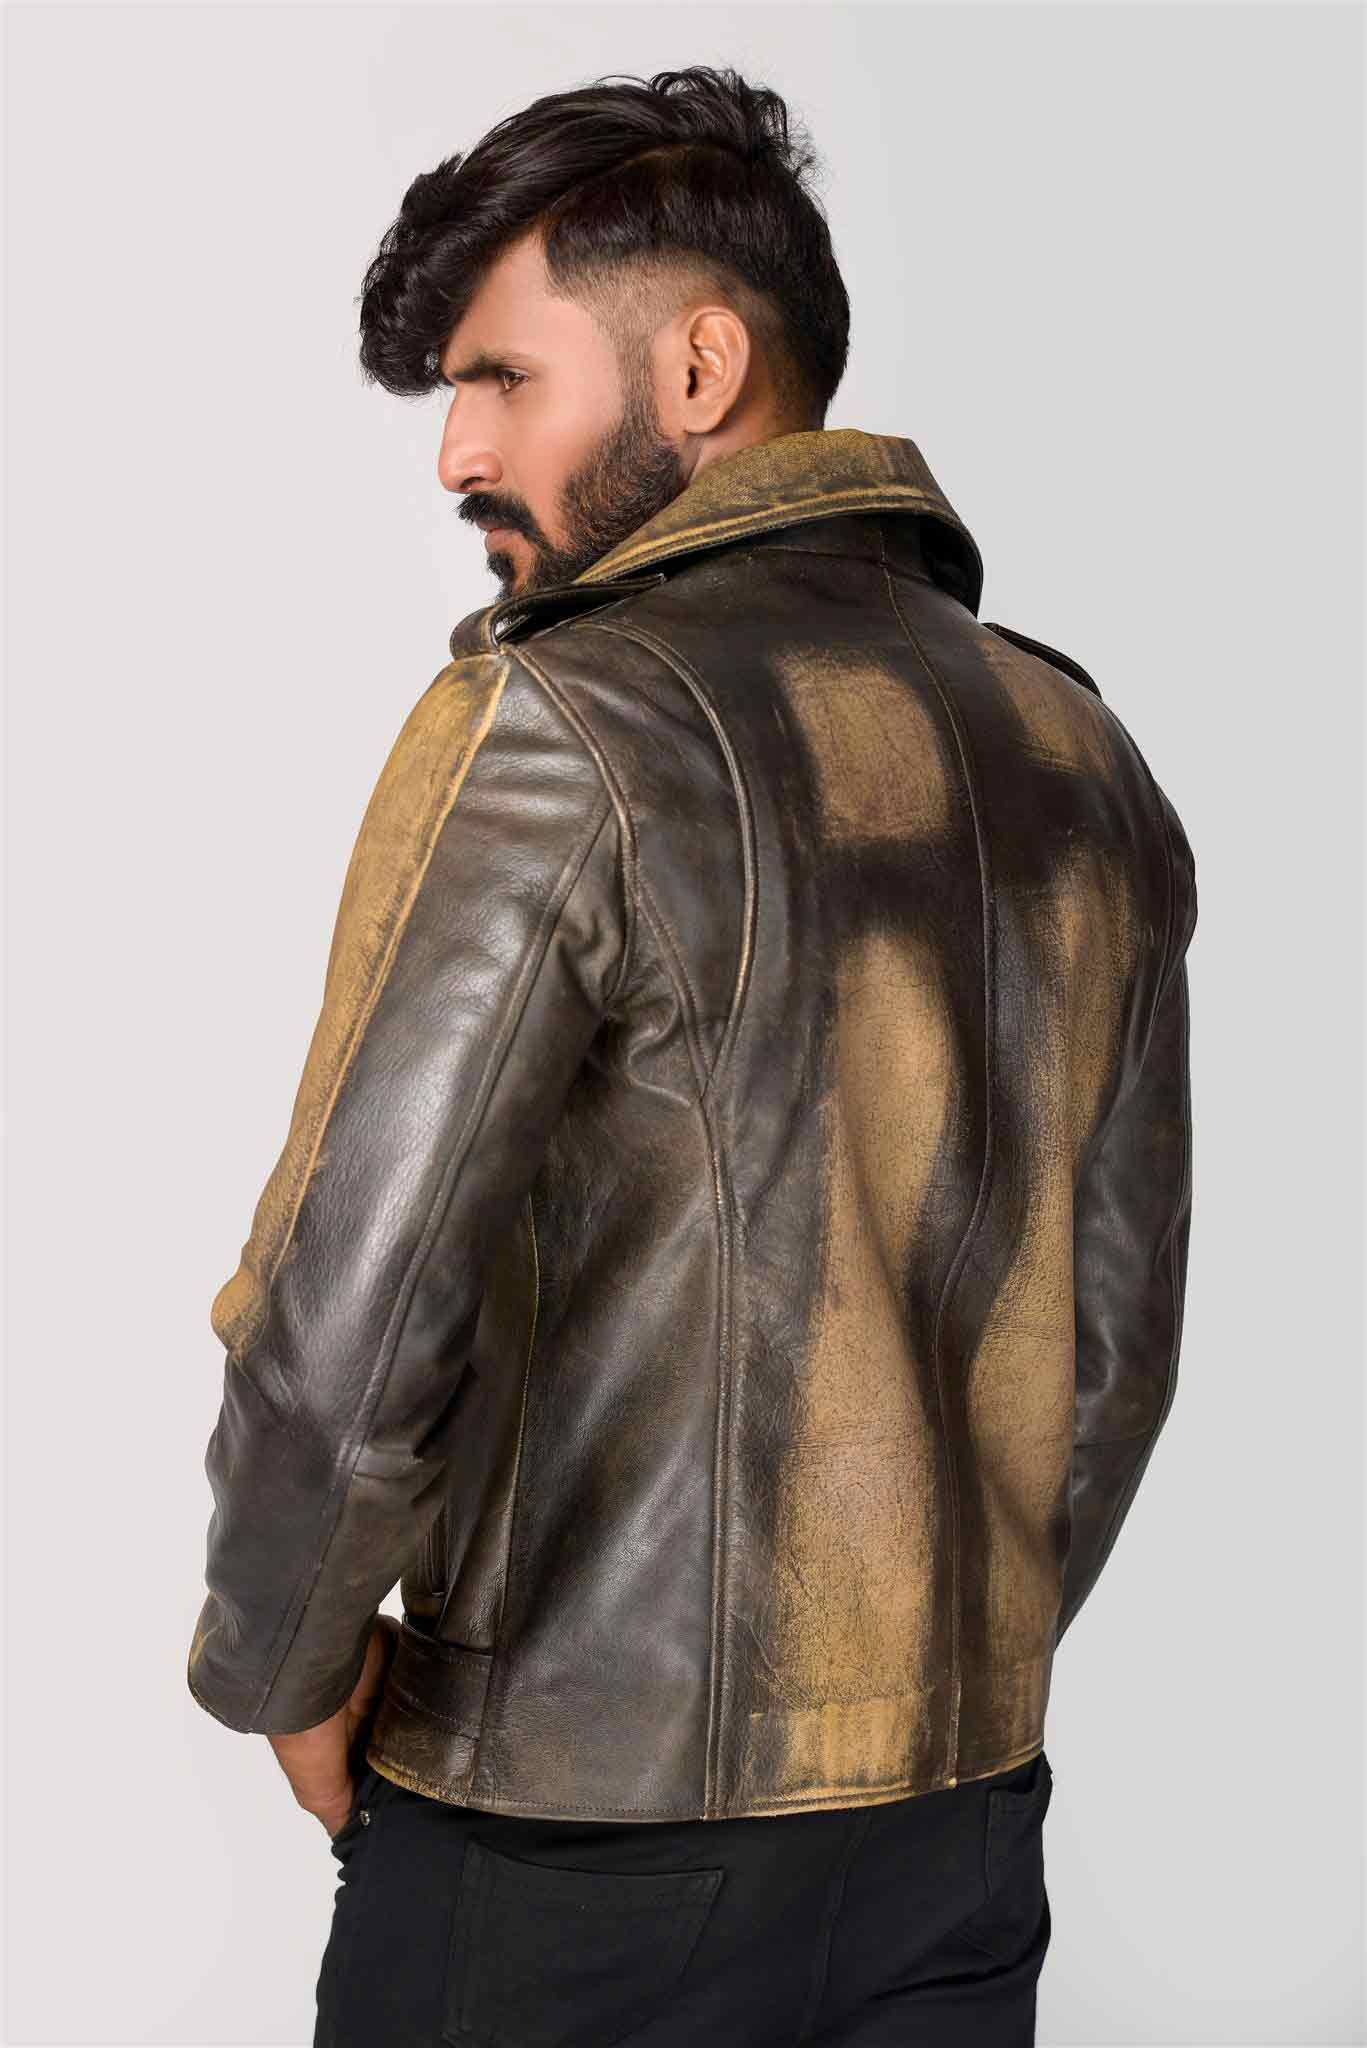 Get the best Vintage Leather Jackets at affordable price